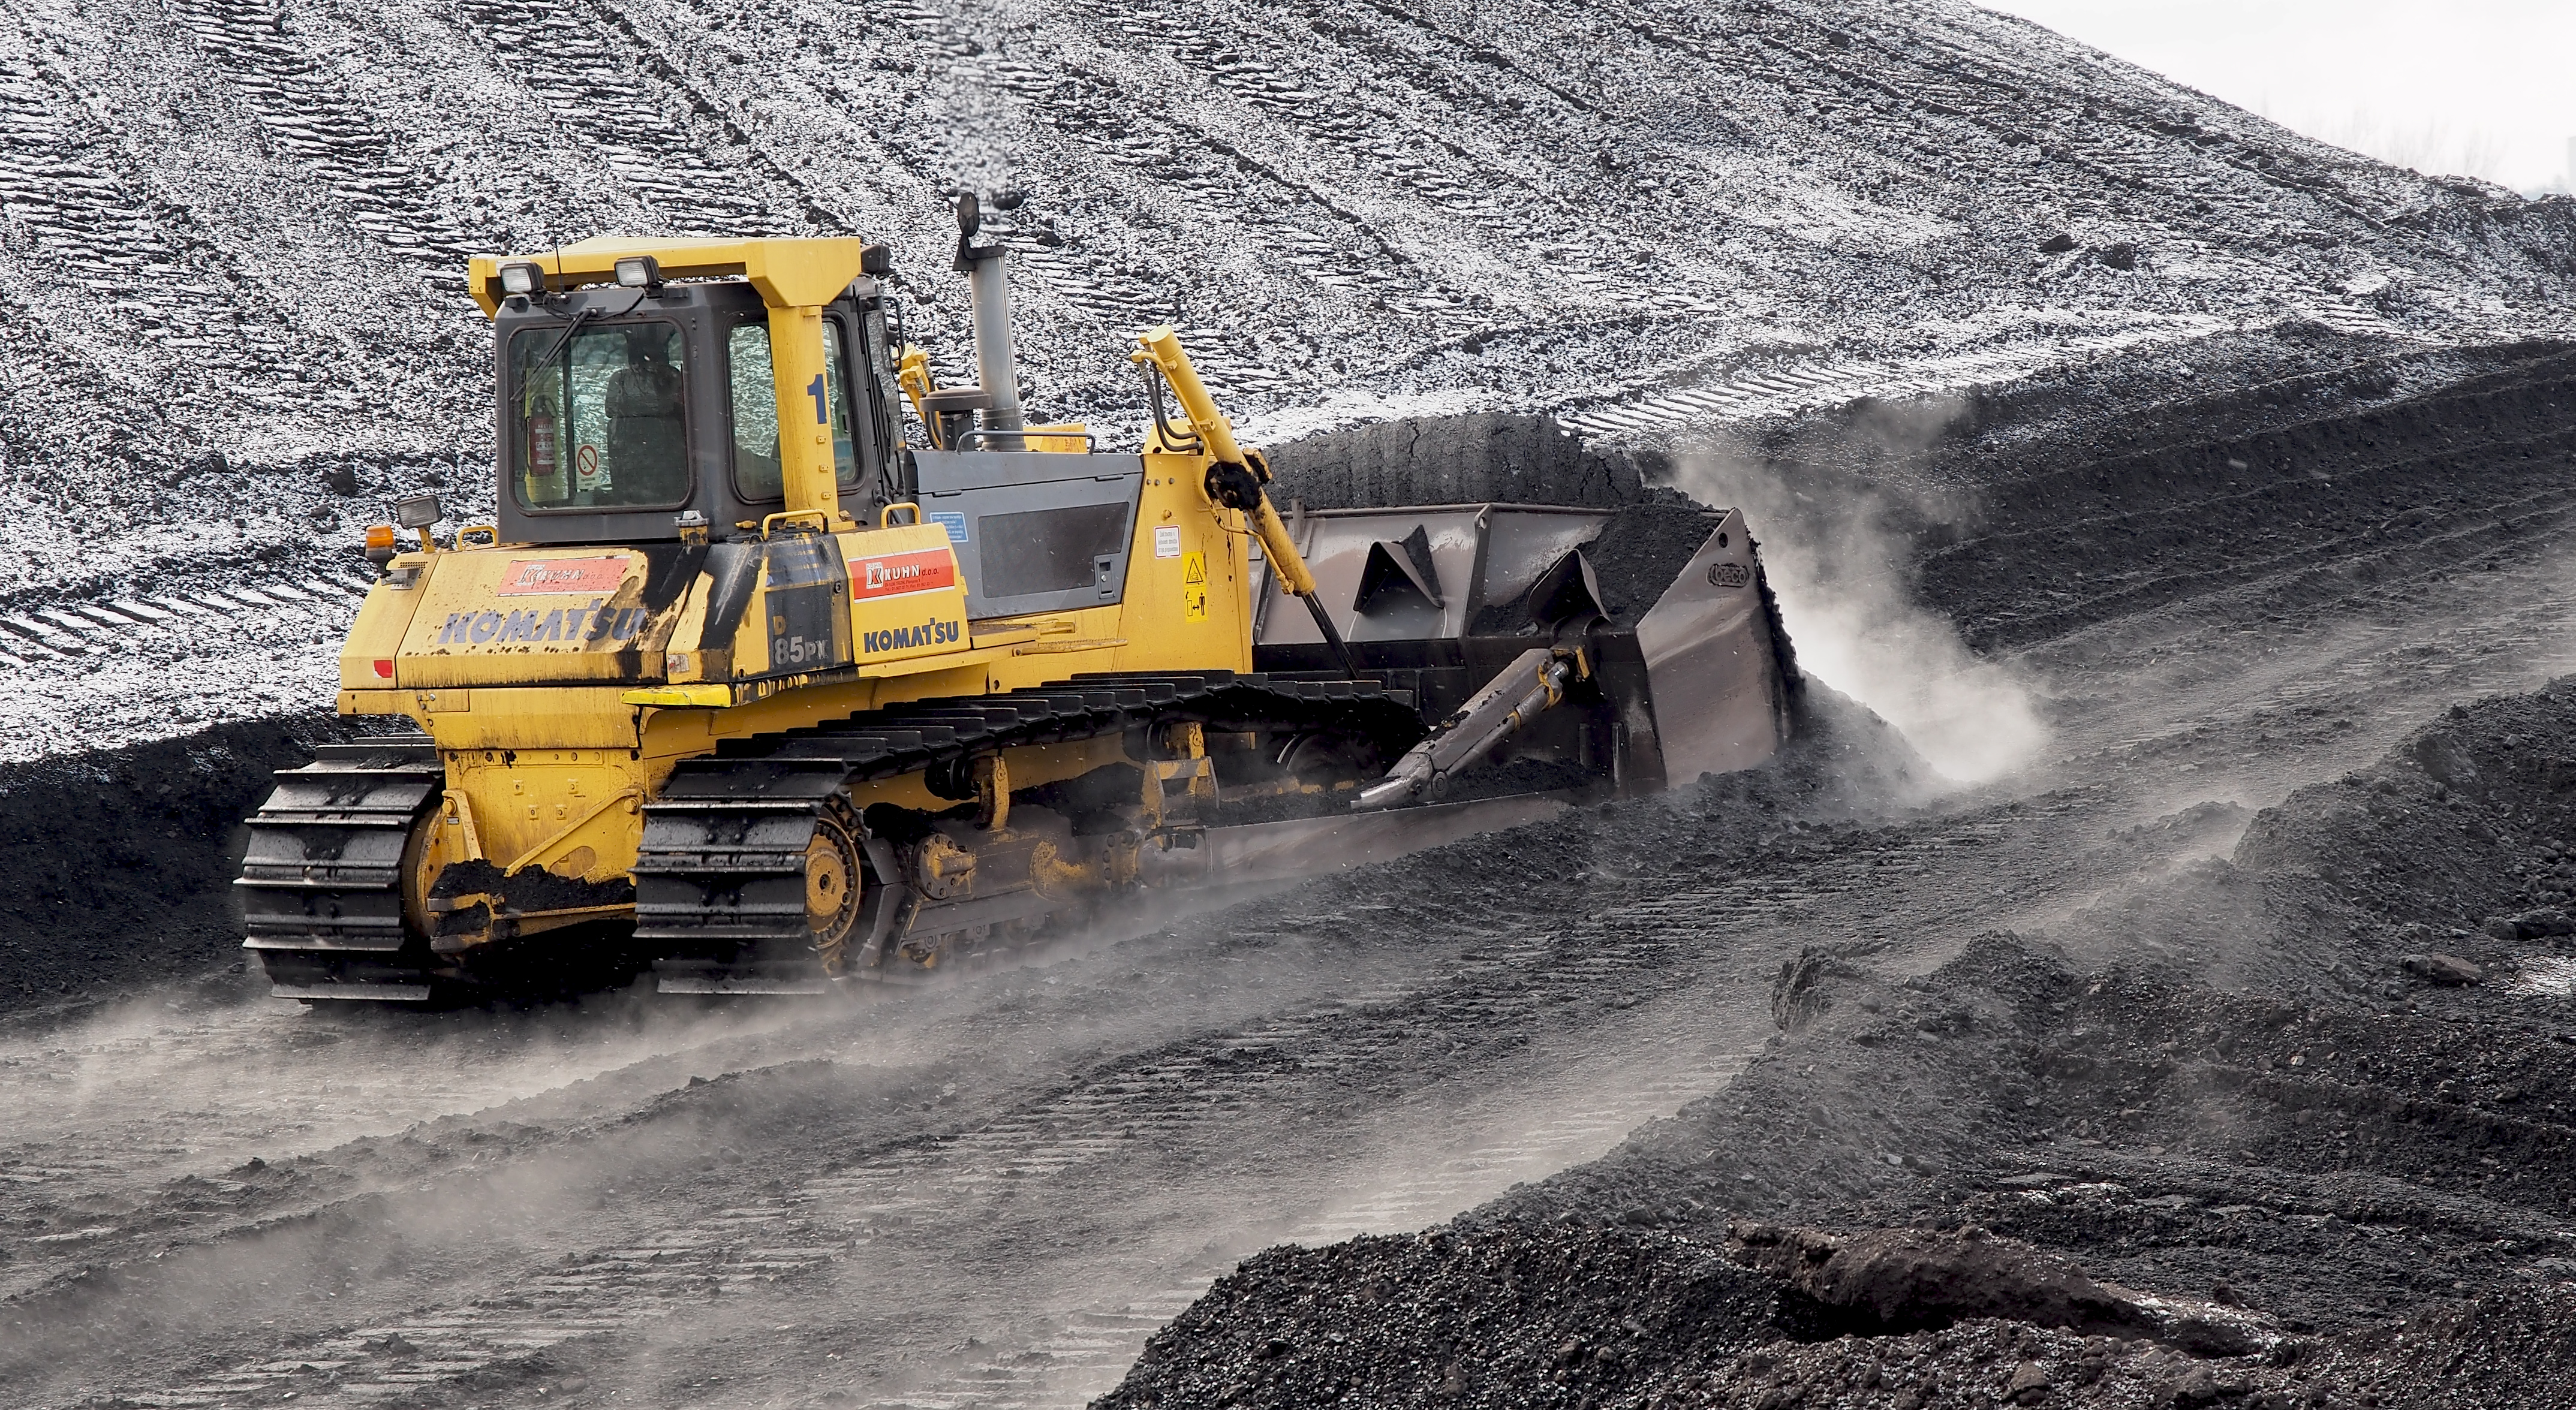 Three-Fourths of the Worlds Planned Coal Projects Scrapped Since 2015